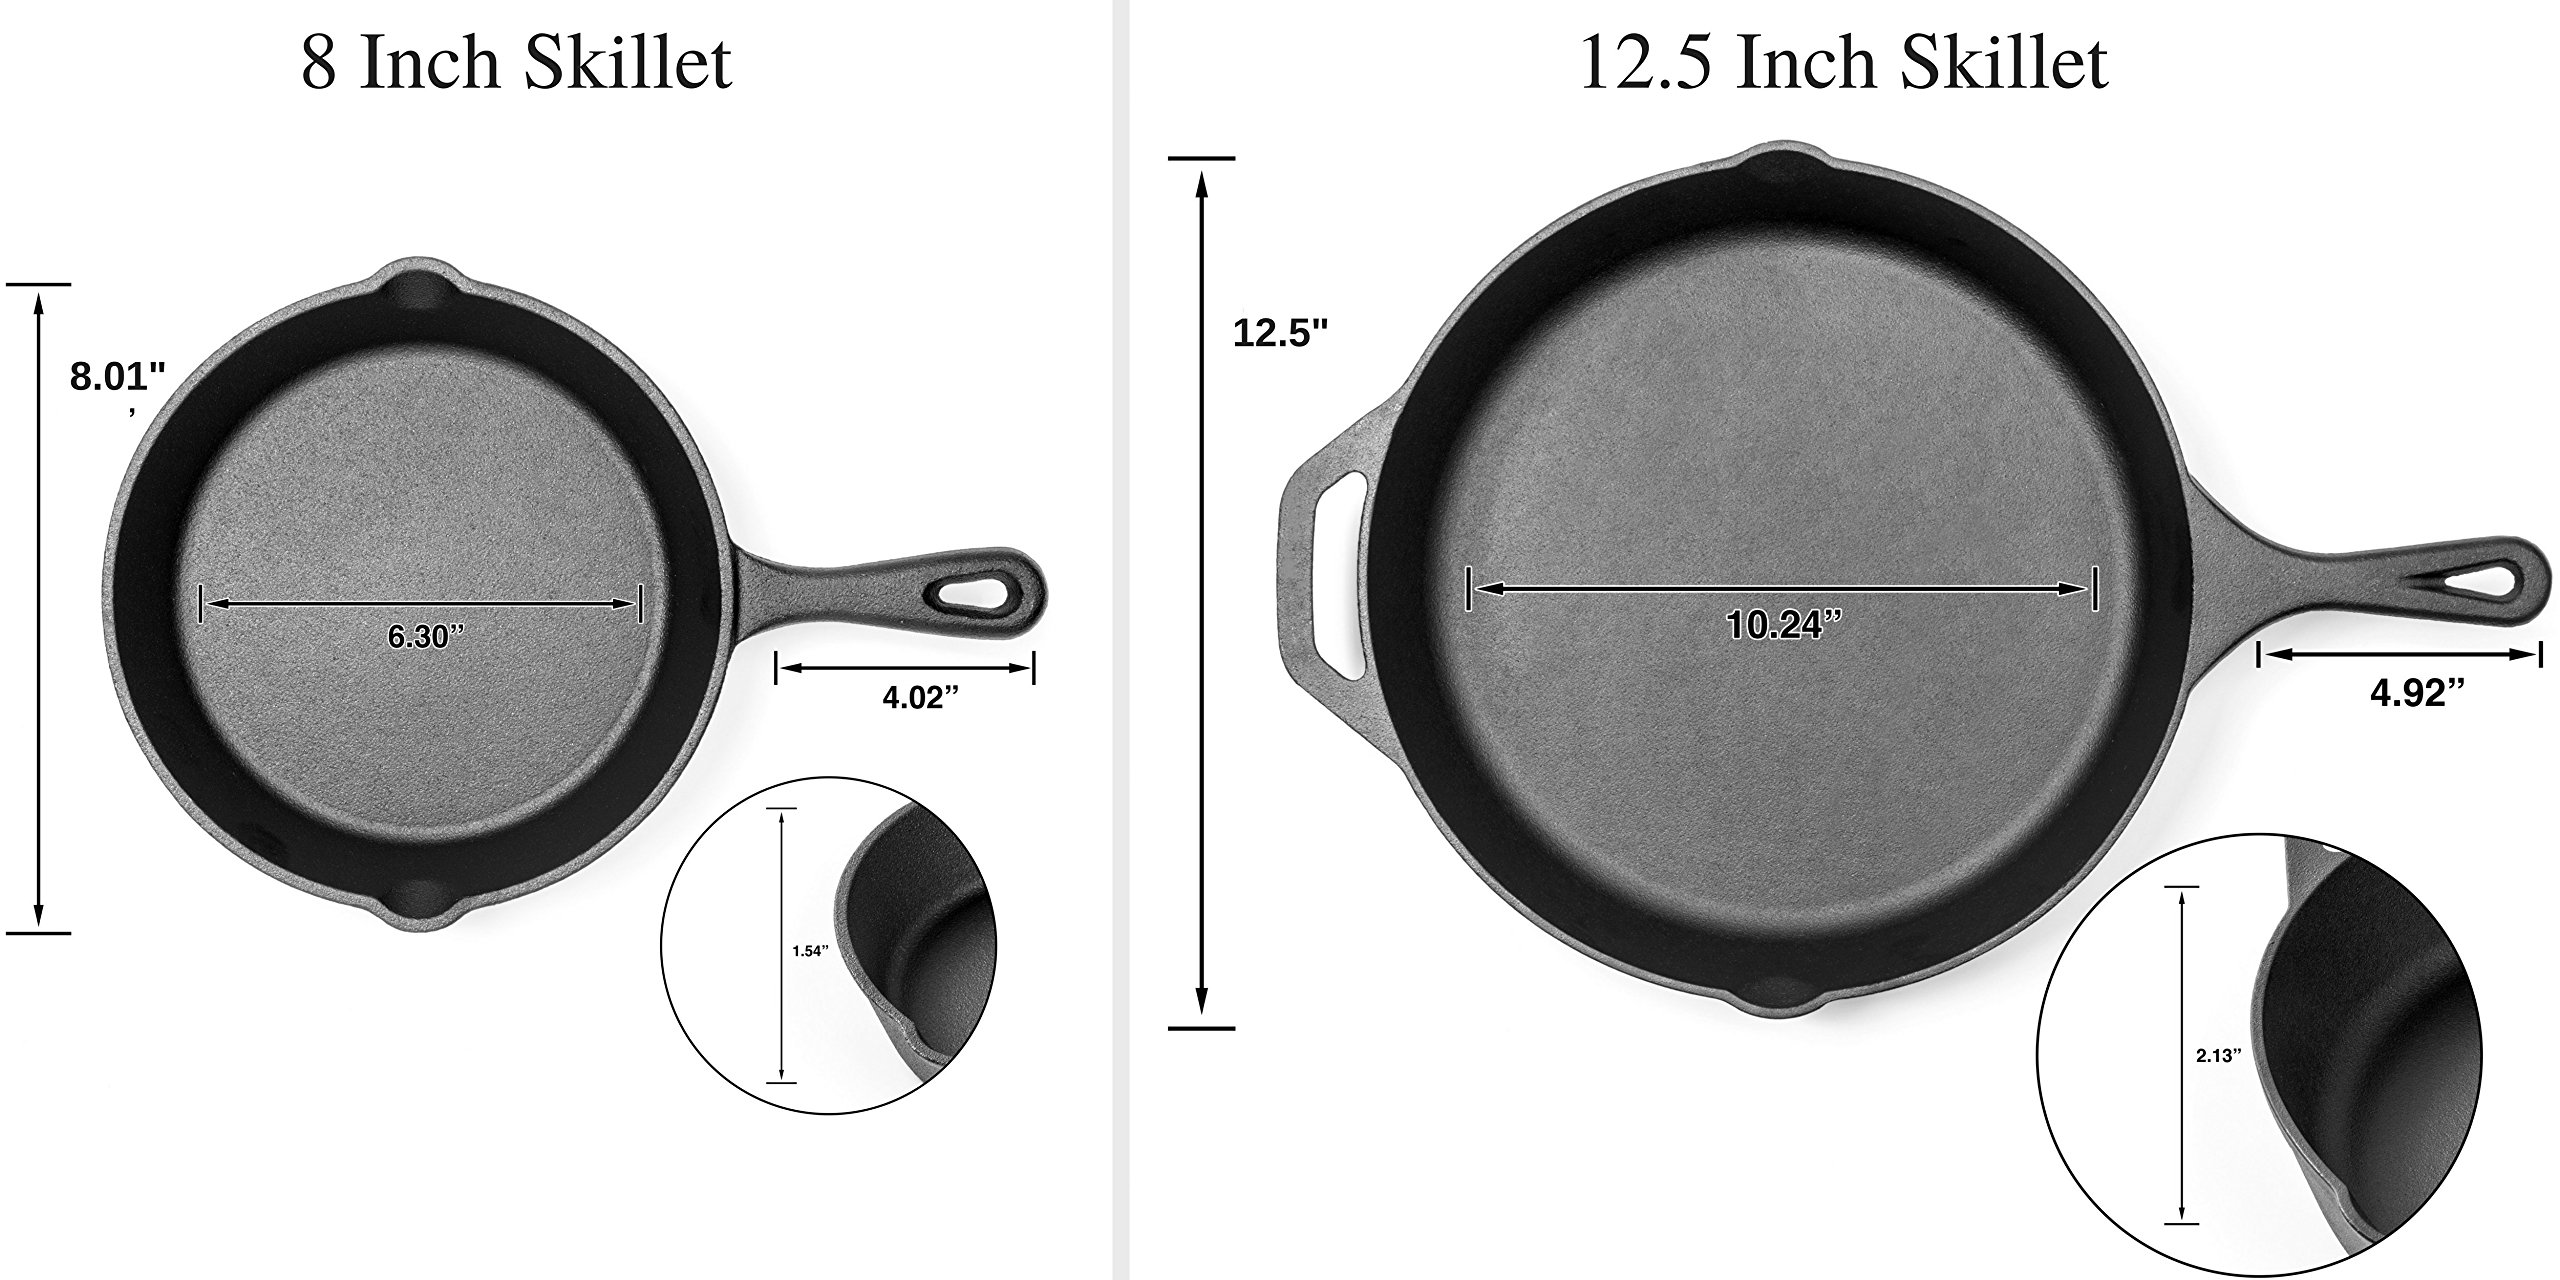 Pre-Seasoned Cast Iron Skillet 2 Piece Set (12.5 inch & 8 inch Pans) Best Heavy Duty Professional Restaurant Chef Quality Pre Seasoned Pan Cookware Set - Great For Frying, Saute, Cooking Pizza & More by Amsha Kitchen (Image #2)